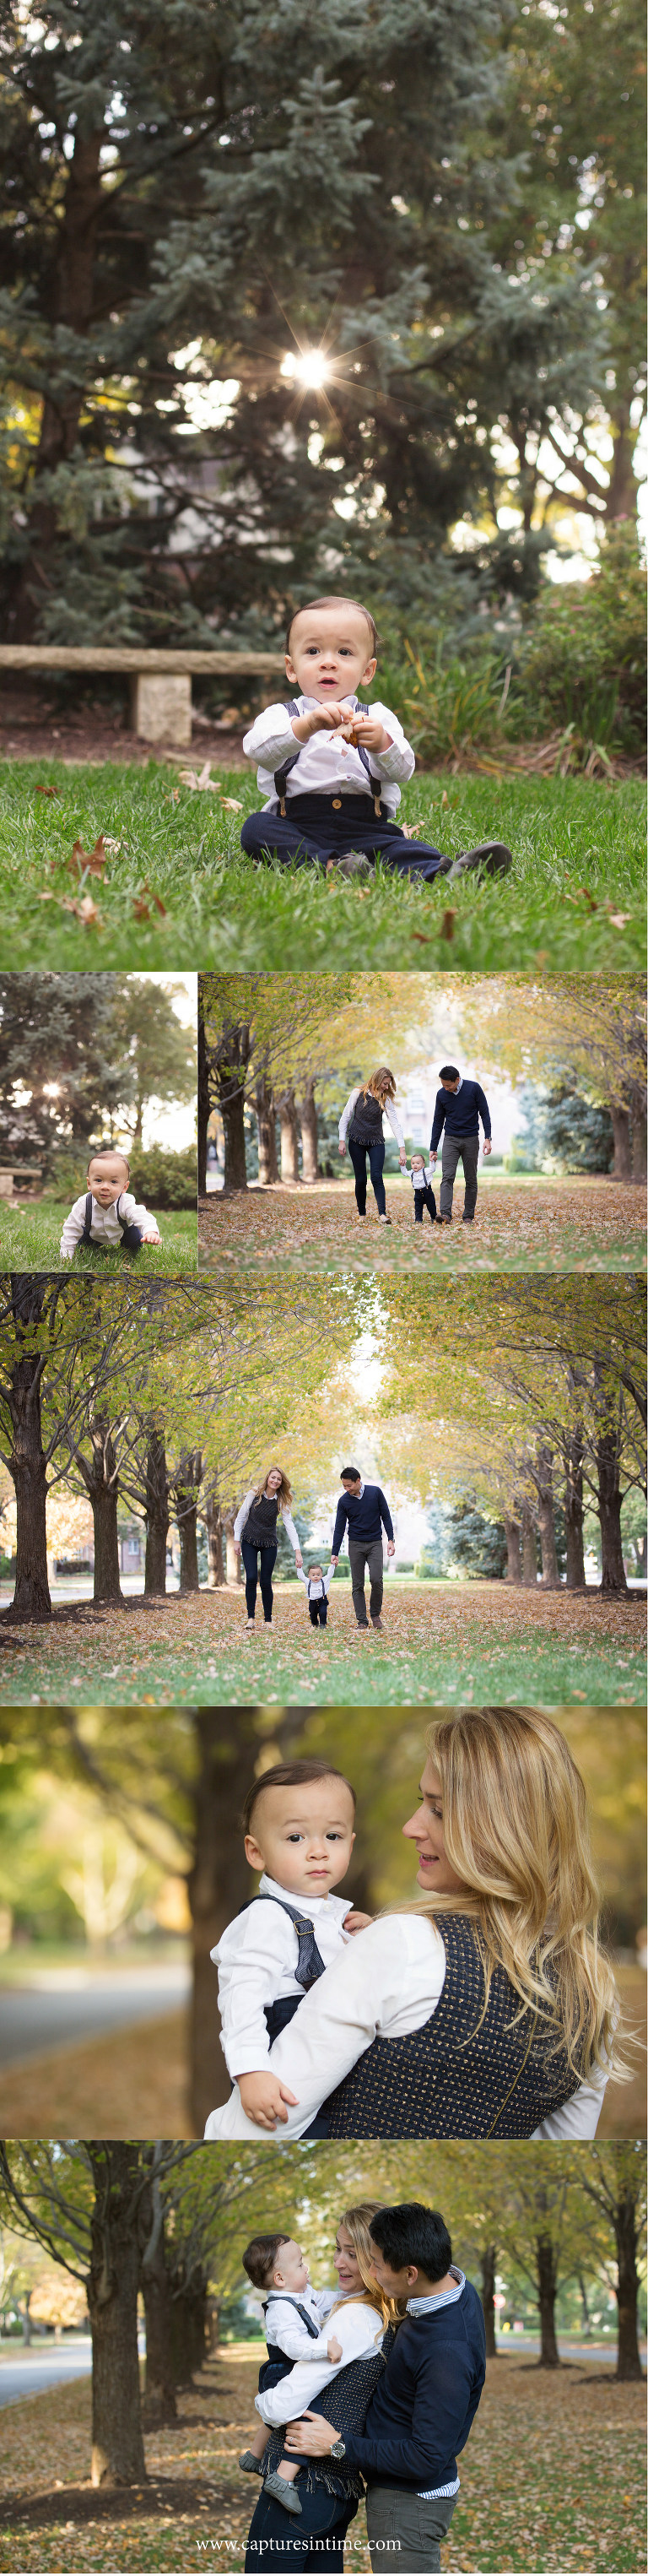 Family Photography Session in Mission Hills